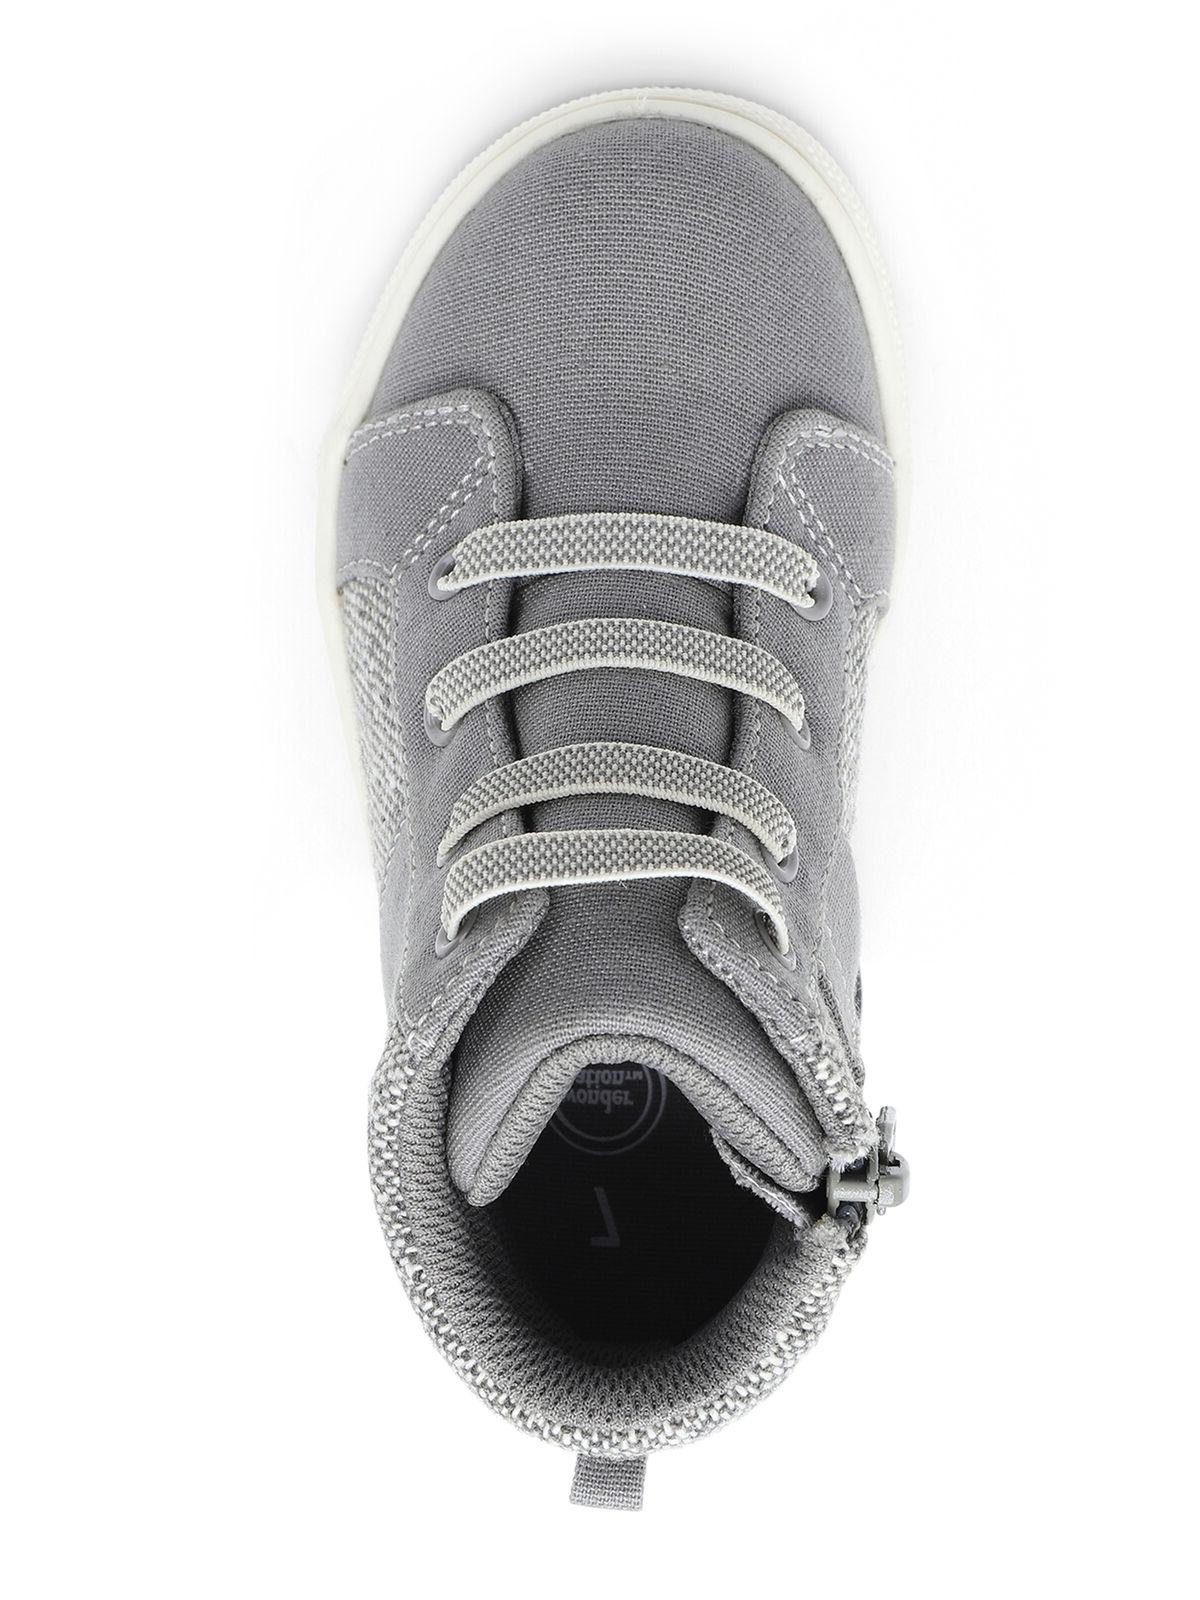 Gray Casual Sneakers Shoes: